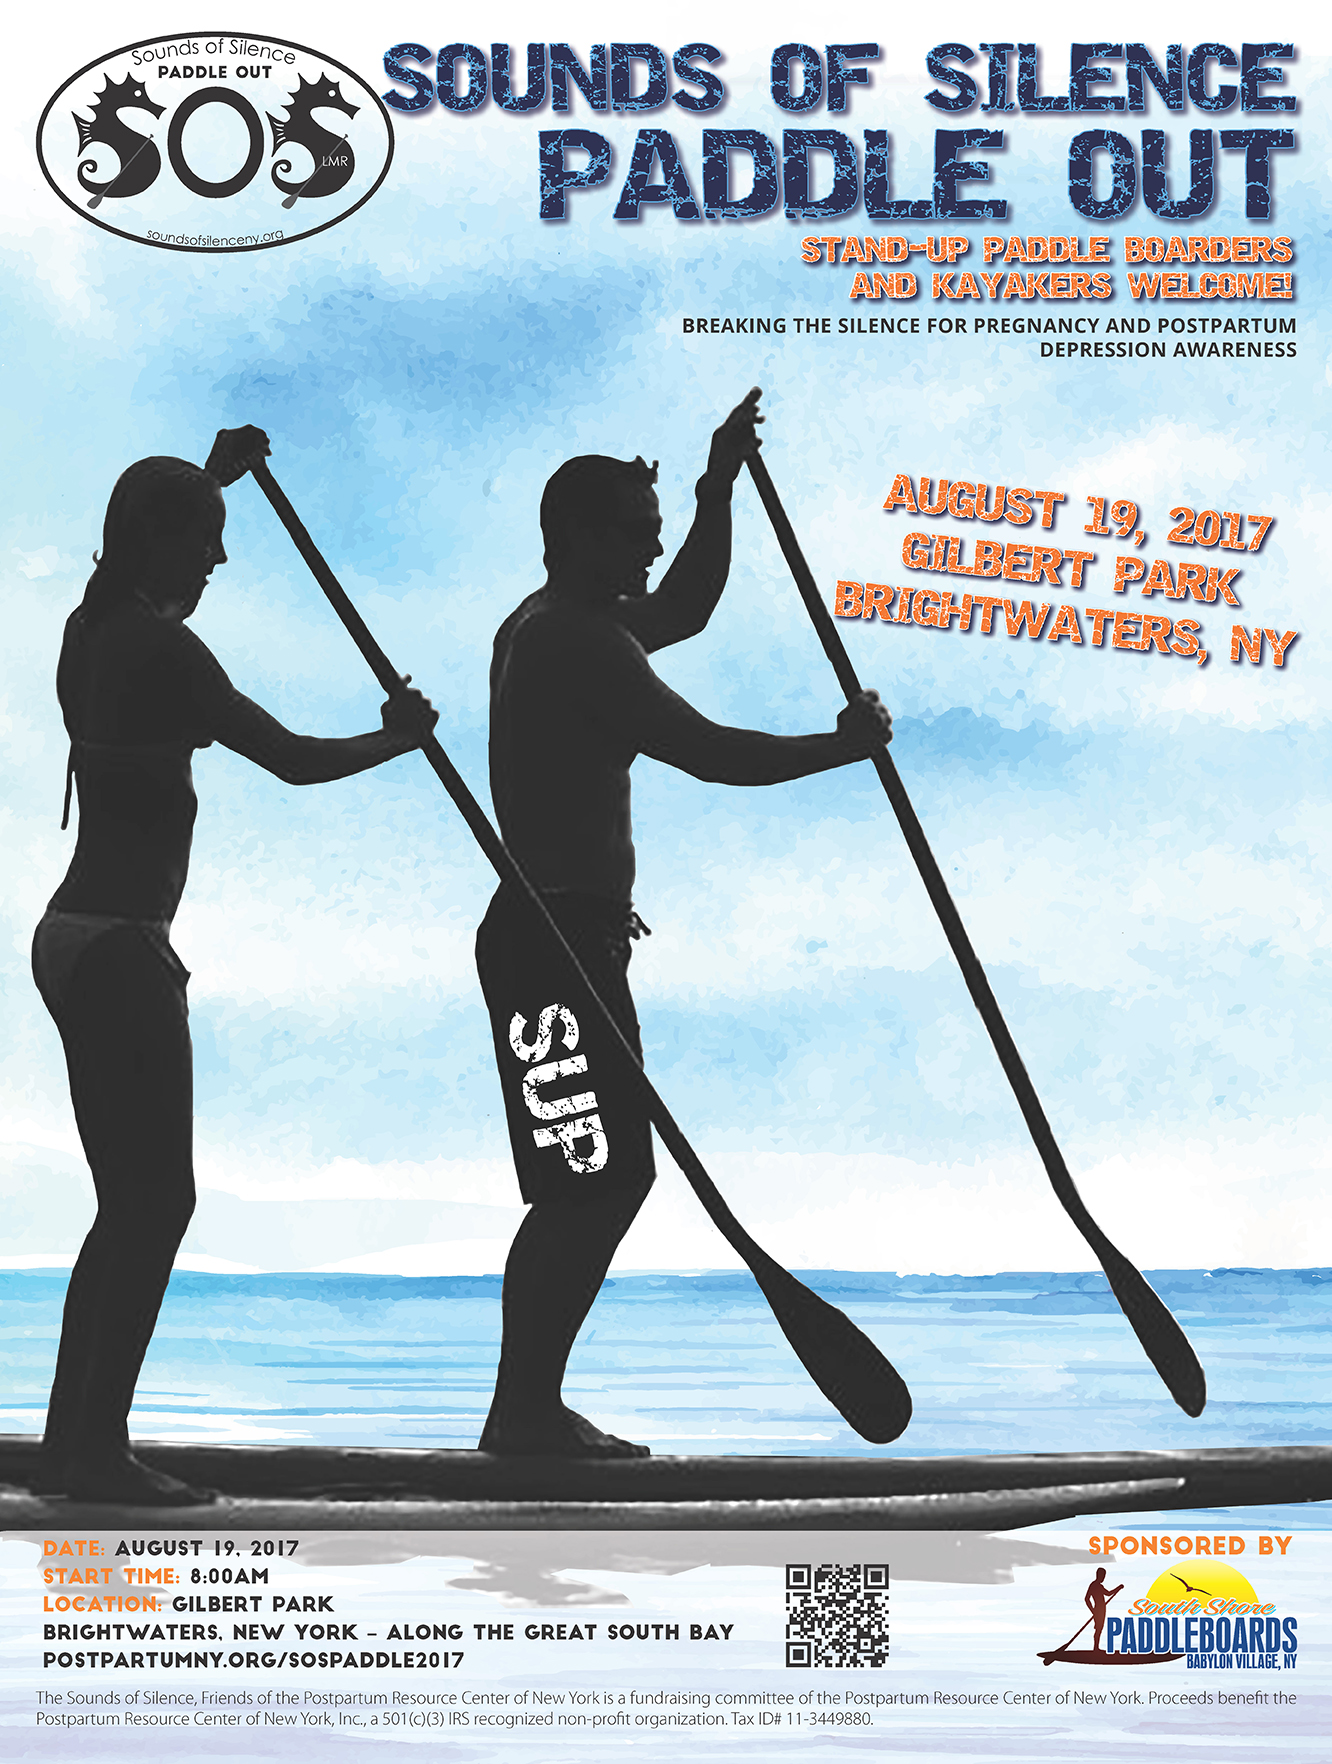 Sounds of Silence Paddle Out Event poster – August, 19 2017.